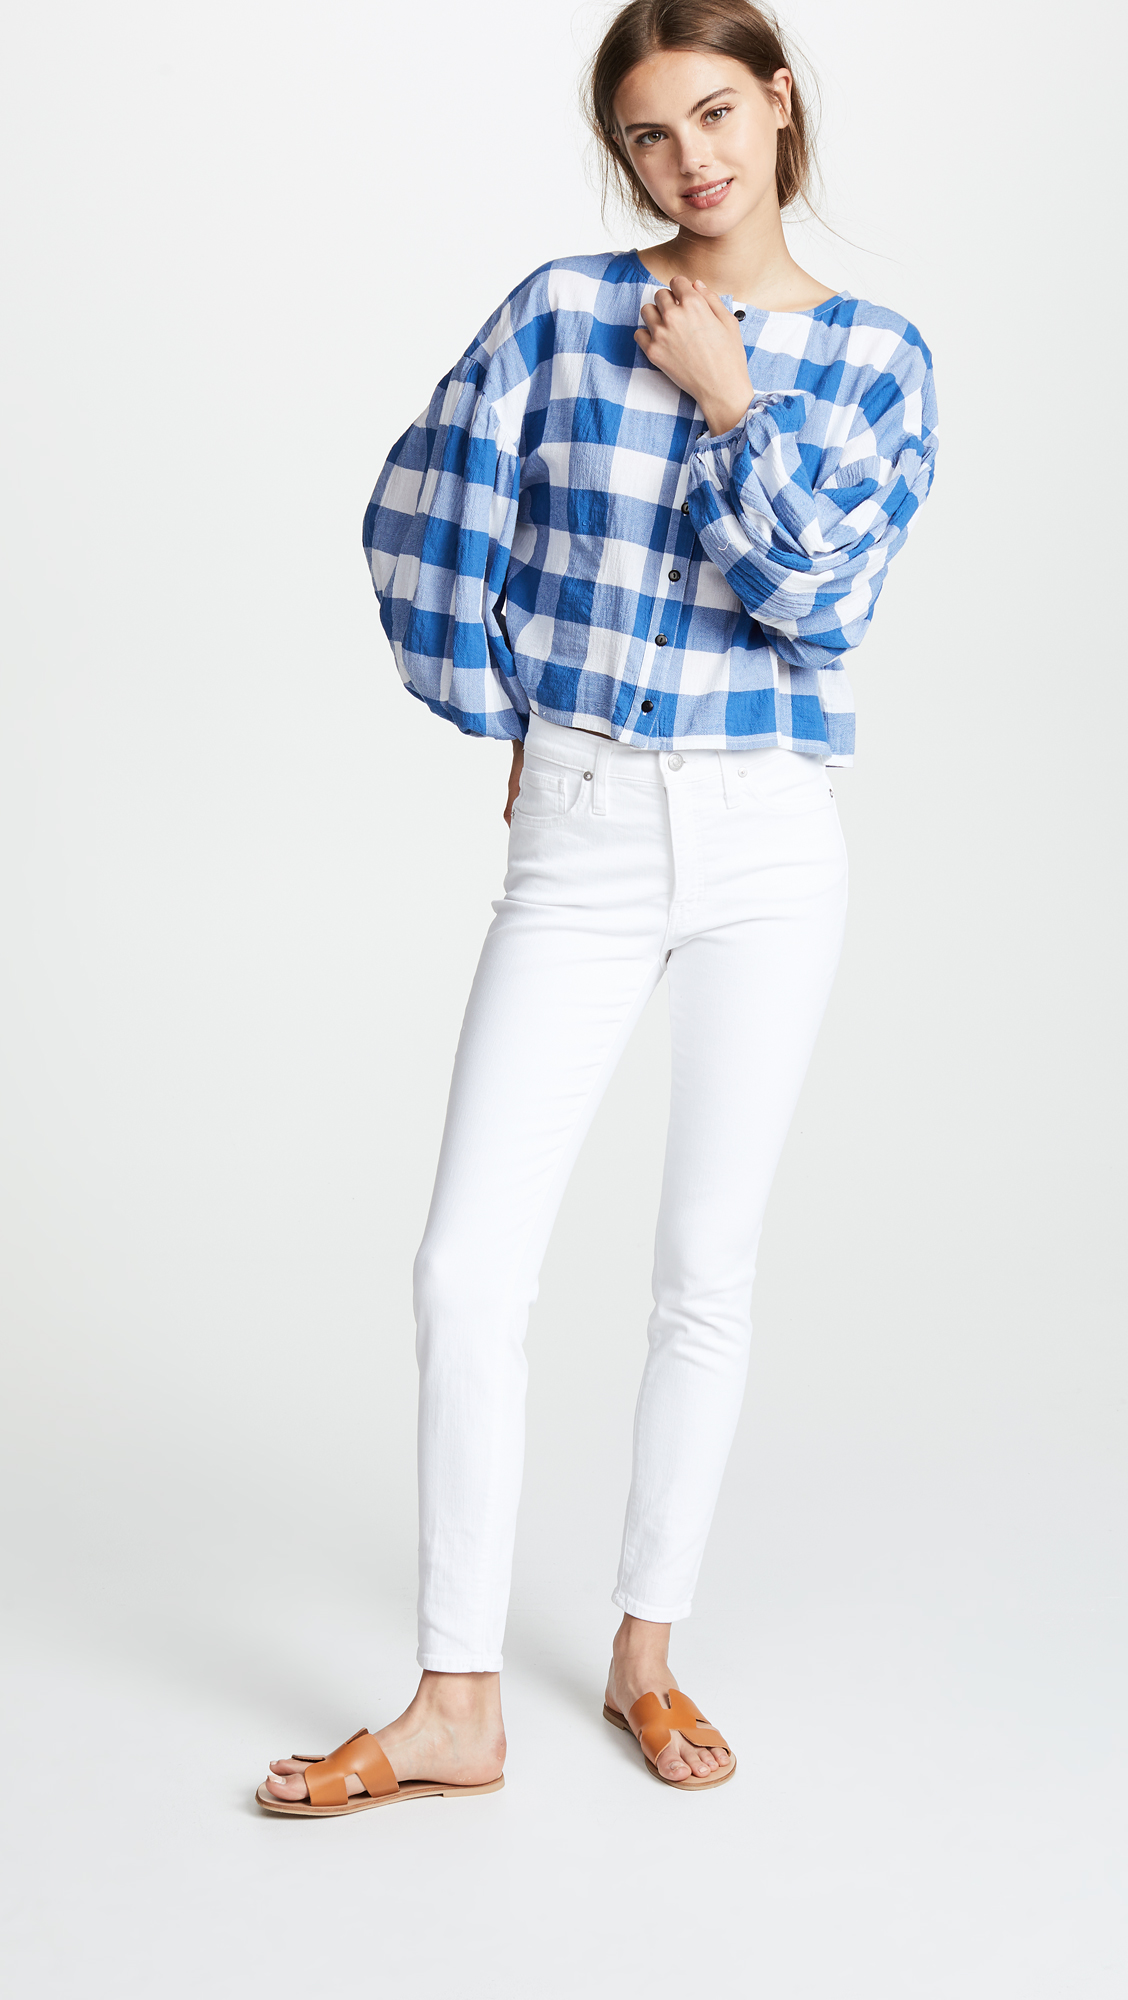 White Madewell Jeans Blue Gingham Top